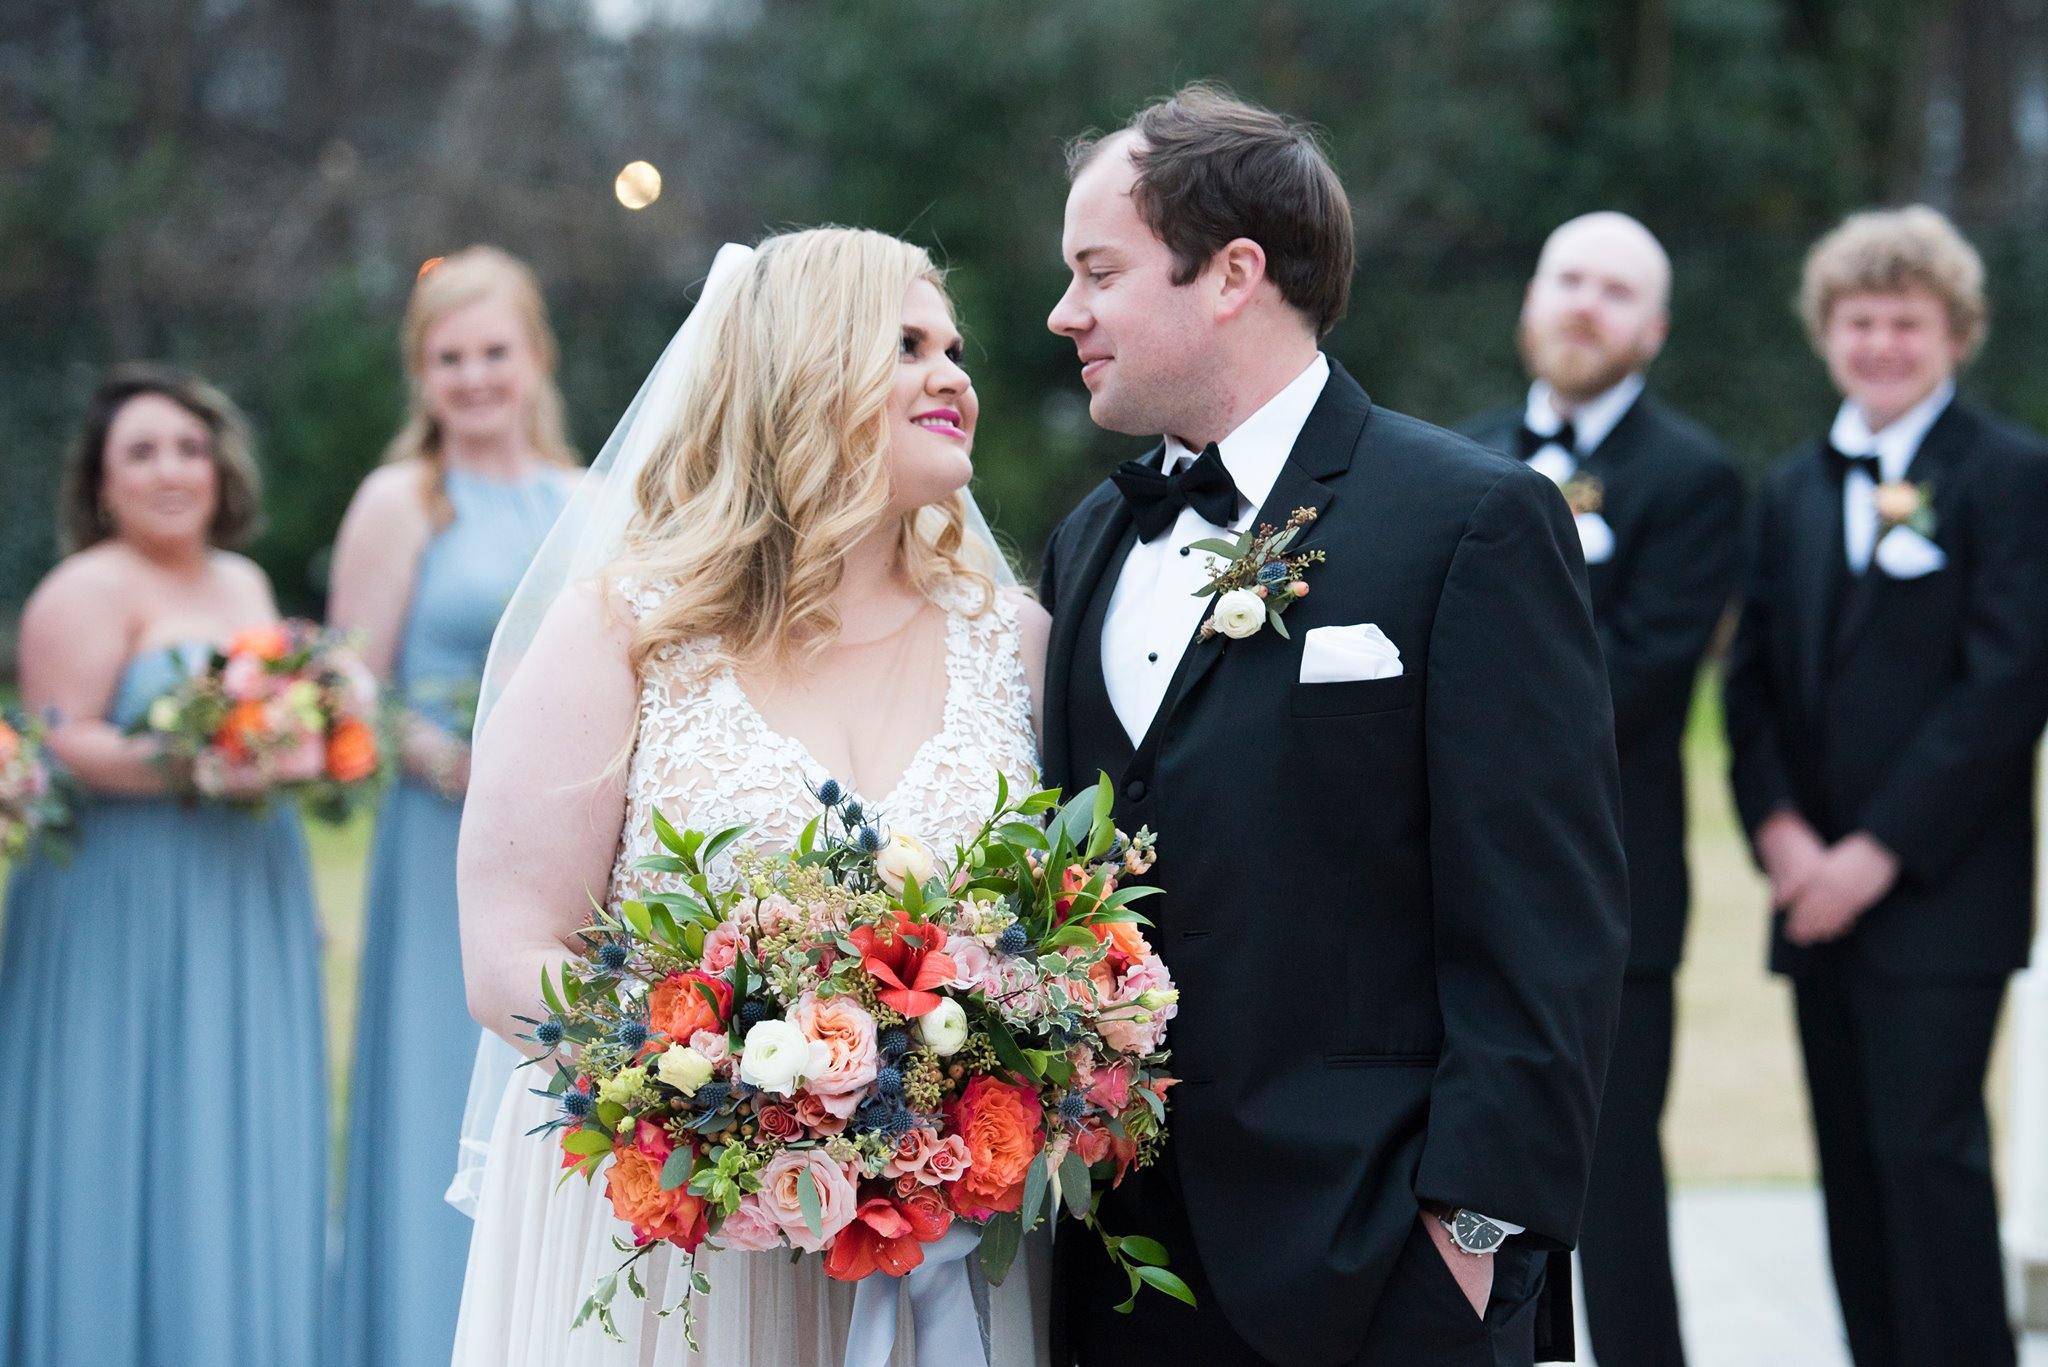 Bride and groom embrace after wedding ceremony at Separk Mansion captured by Soussou Productions